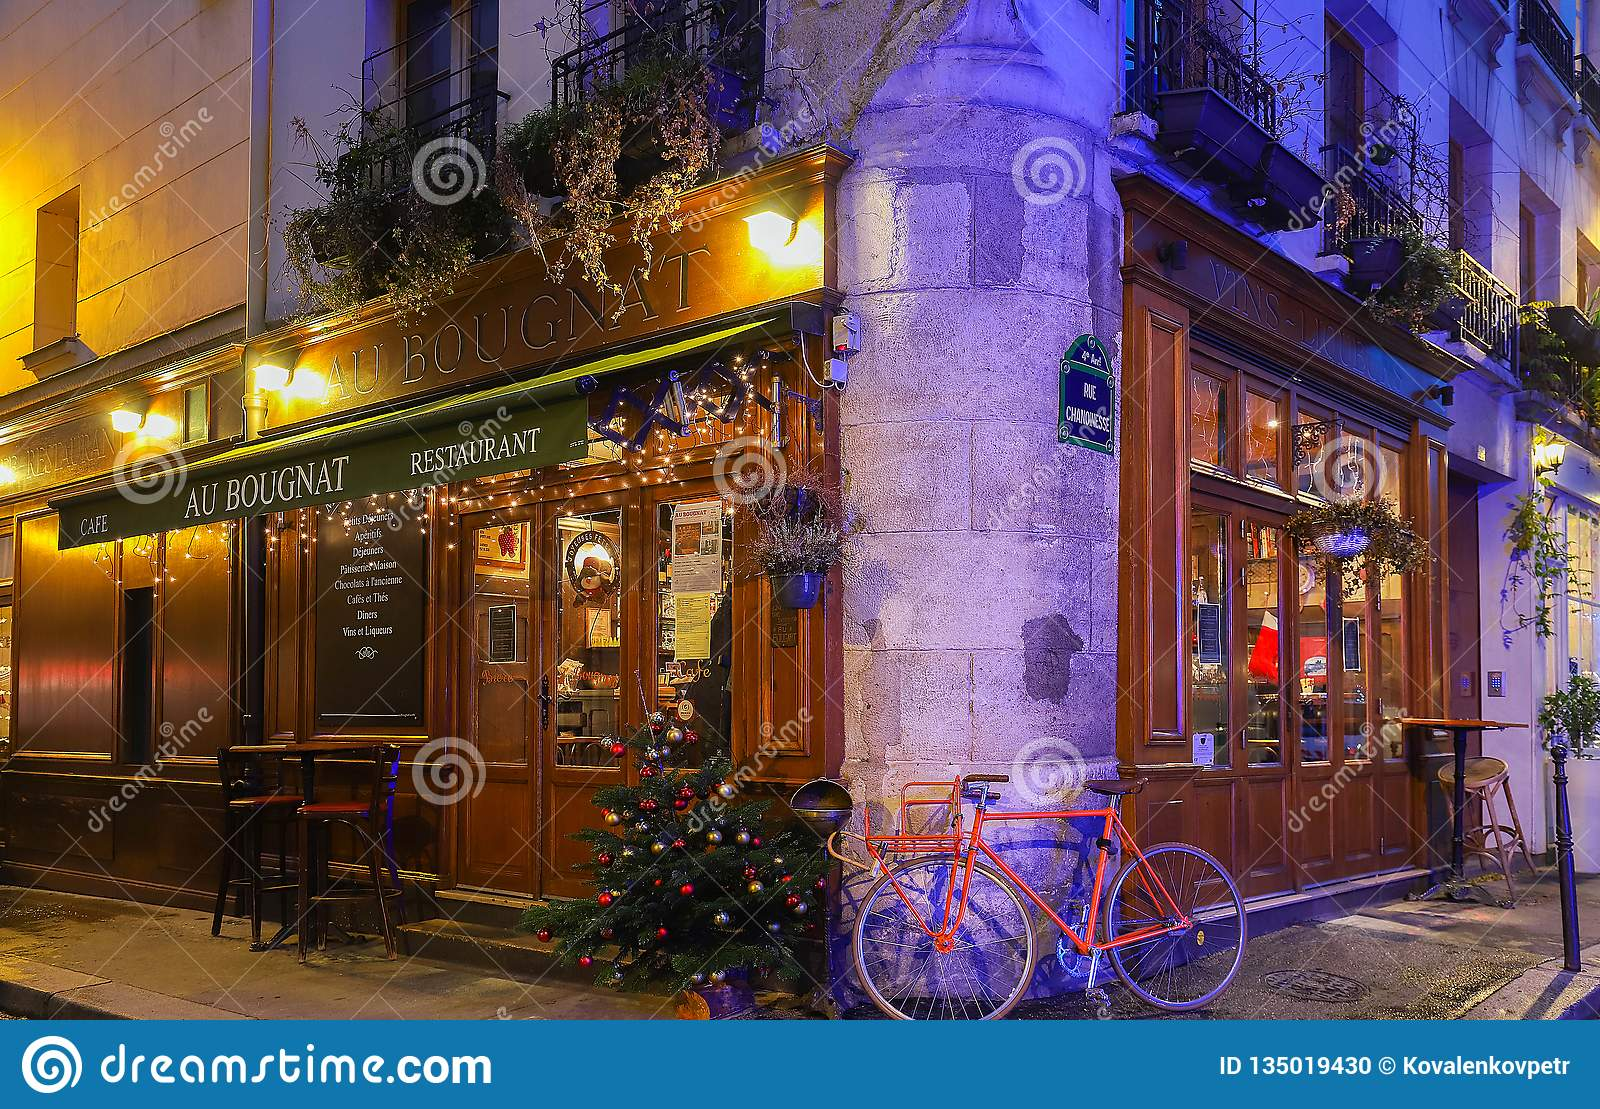 Christmas Paris France.The Traditional French Cafe Au Bougnat Decorated For